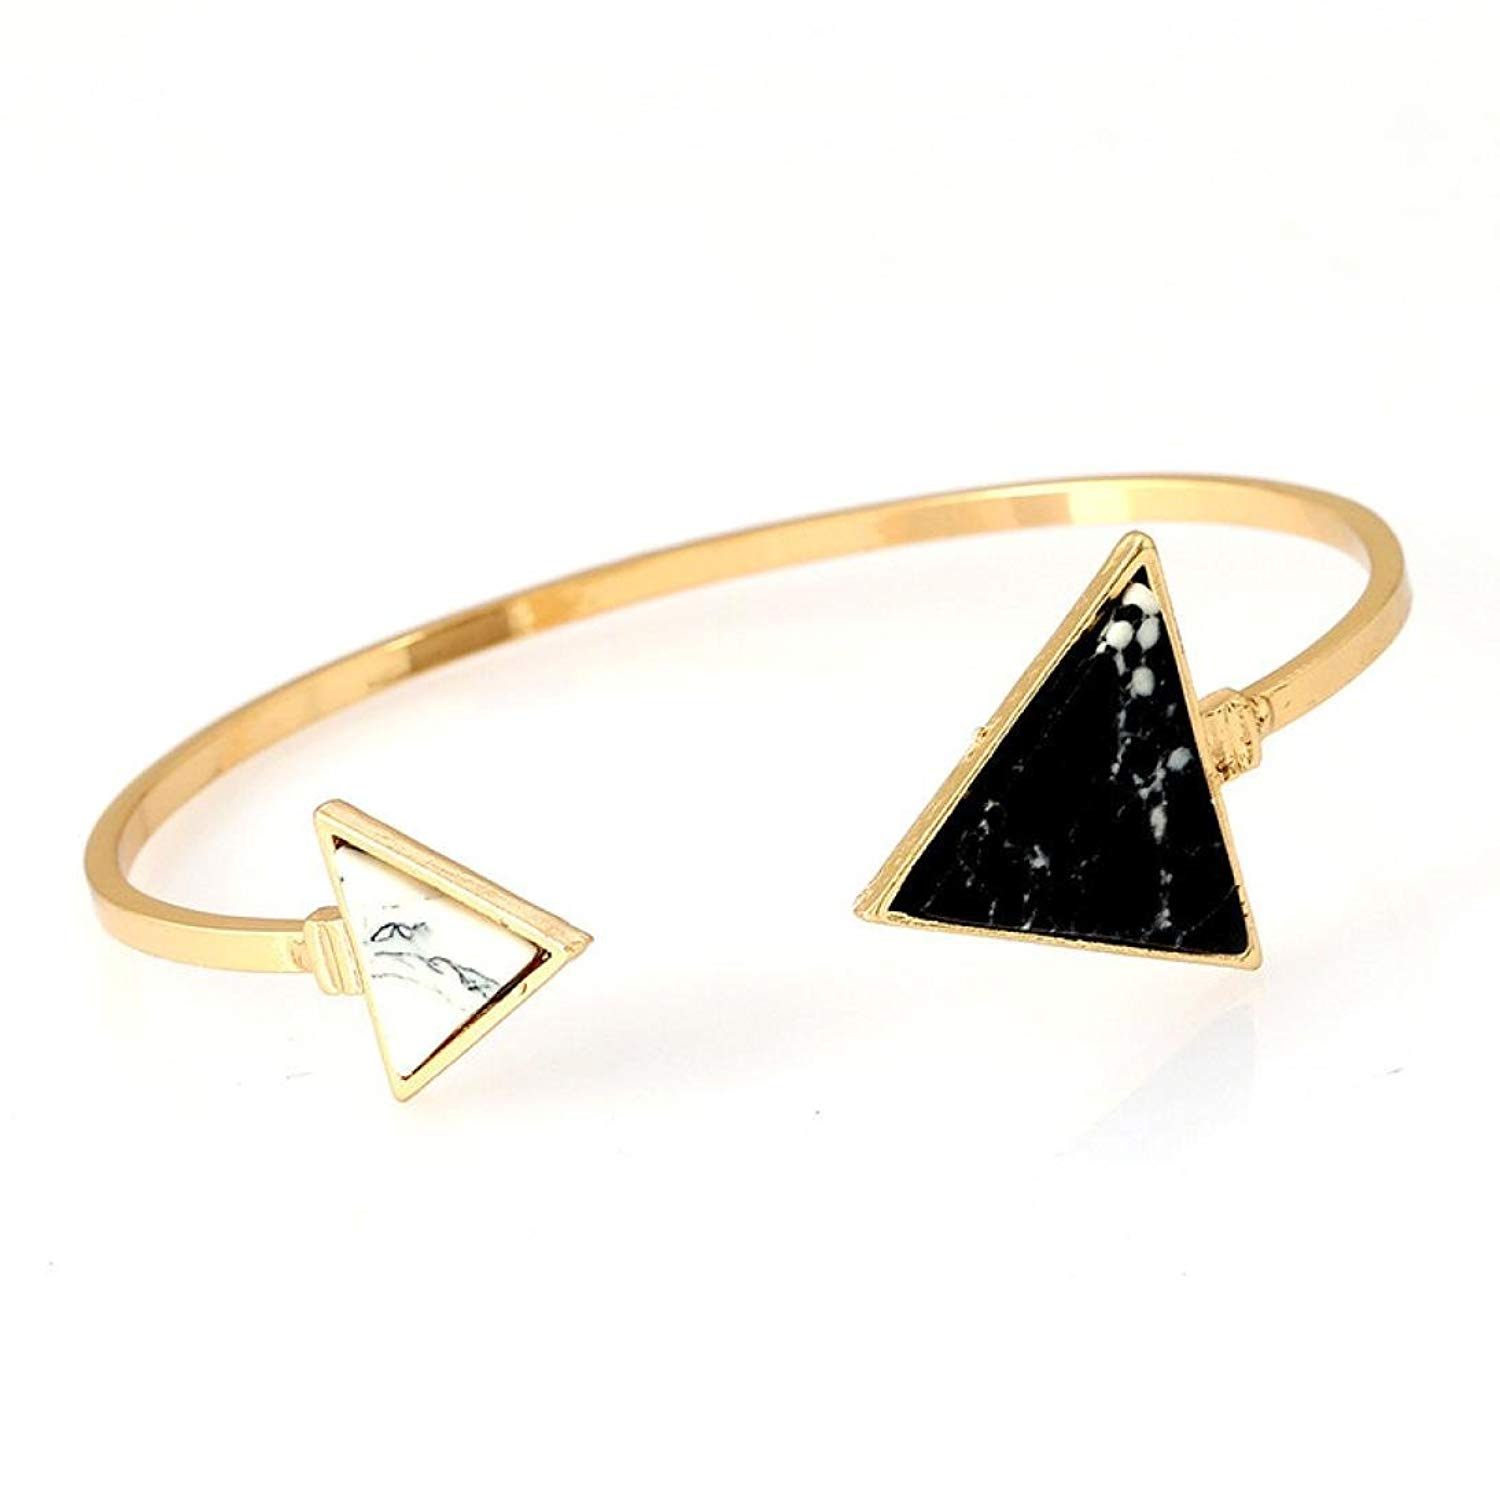 JSPOYOU Promotions! Womens Adjustable Geometric Asymmetrical Turquoise Open Bangle